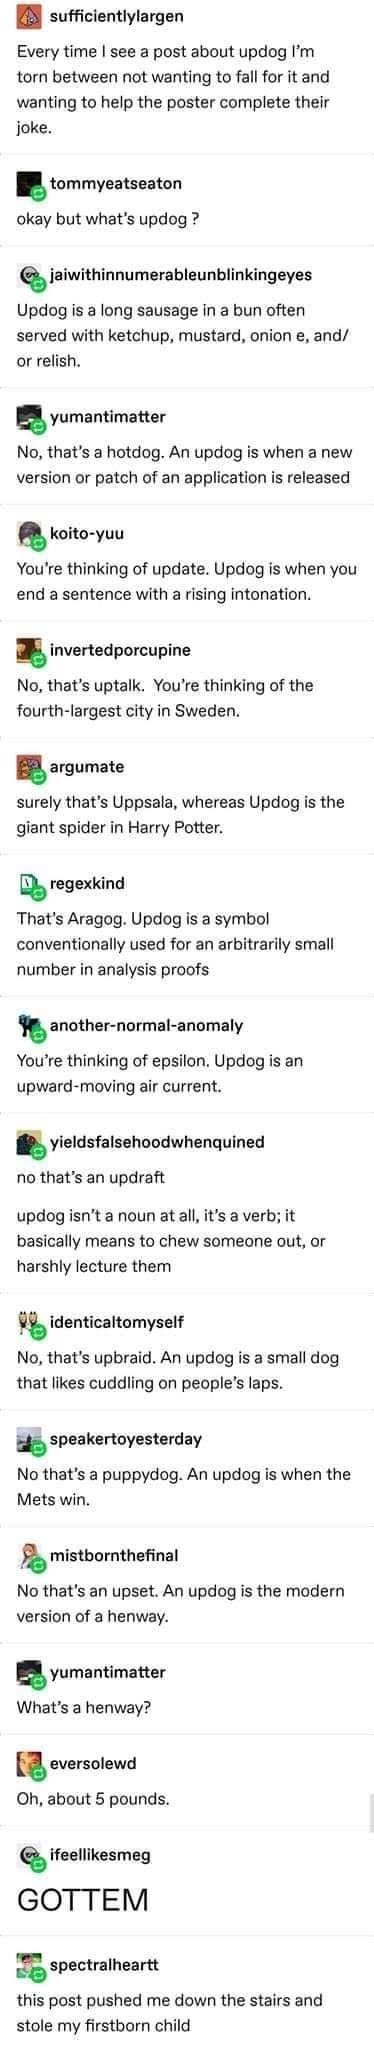 Text - A sufficientlylargen Every time I see a post about updog I'm torn between not wanting to fall for it and wanting to help the poster complete their joke. tommyeatseaton okay but what's updog ? jaiwithinnumerableunblinkingeyes Updog is a long sausage in a bun often served with ketchup, mustard, onion e, and/ or relish. yumantimatter No, that's a hotdog. An updog is when a new version or patch of an application is released koito-yuu You're thinking of update. Updog is when you end a sentence